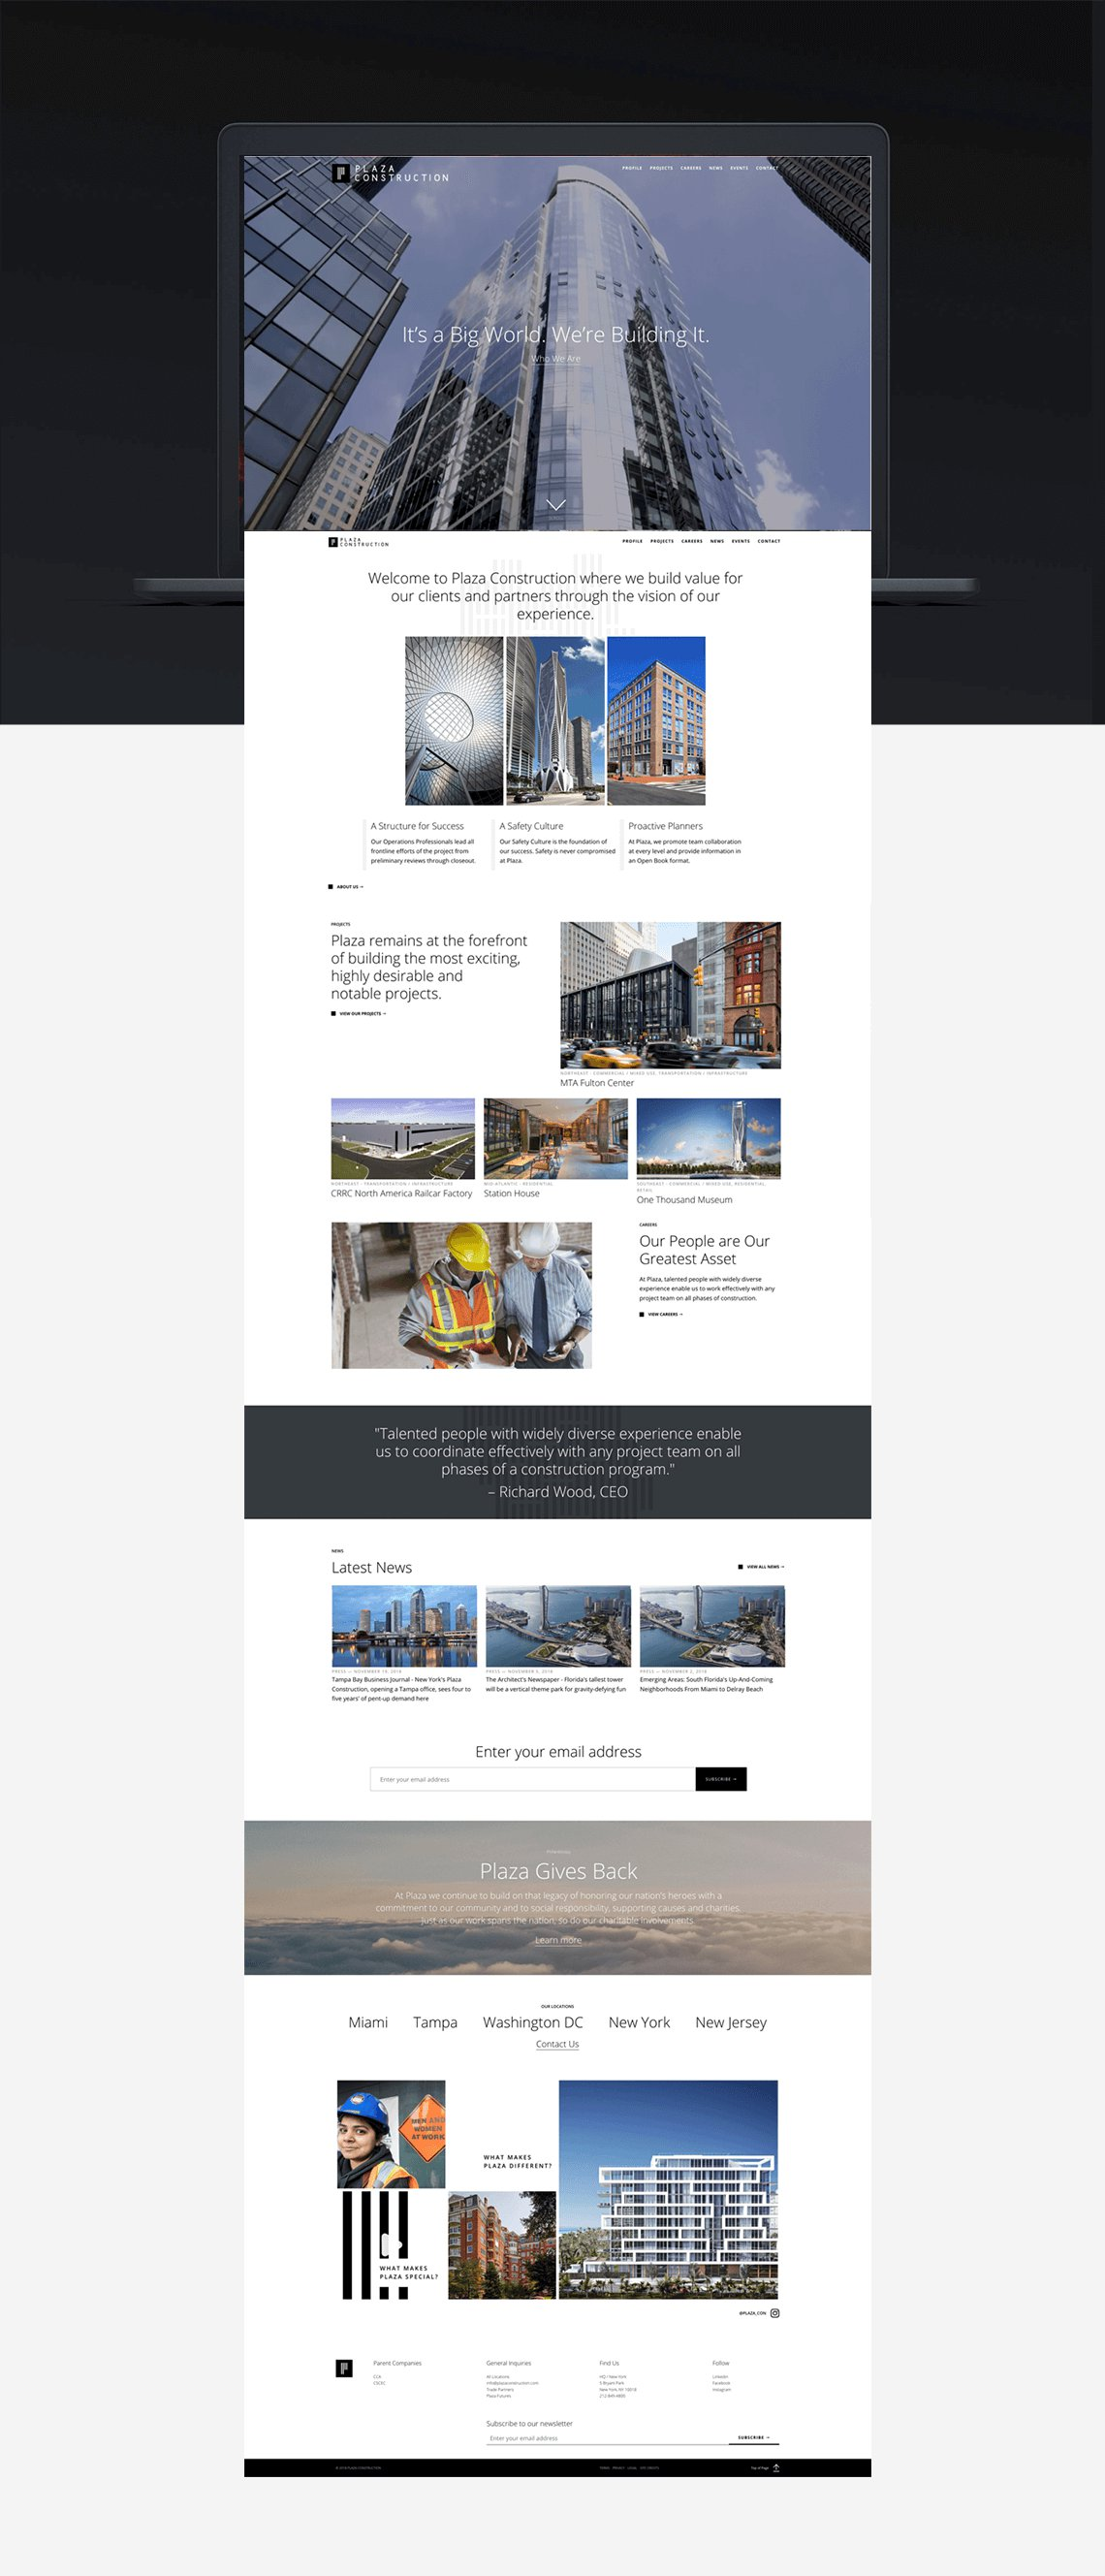 Jacober Creative Brand Identity for Plaza Construction - Photo of new website home page